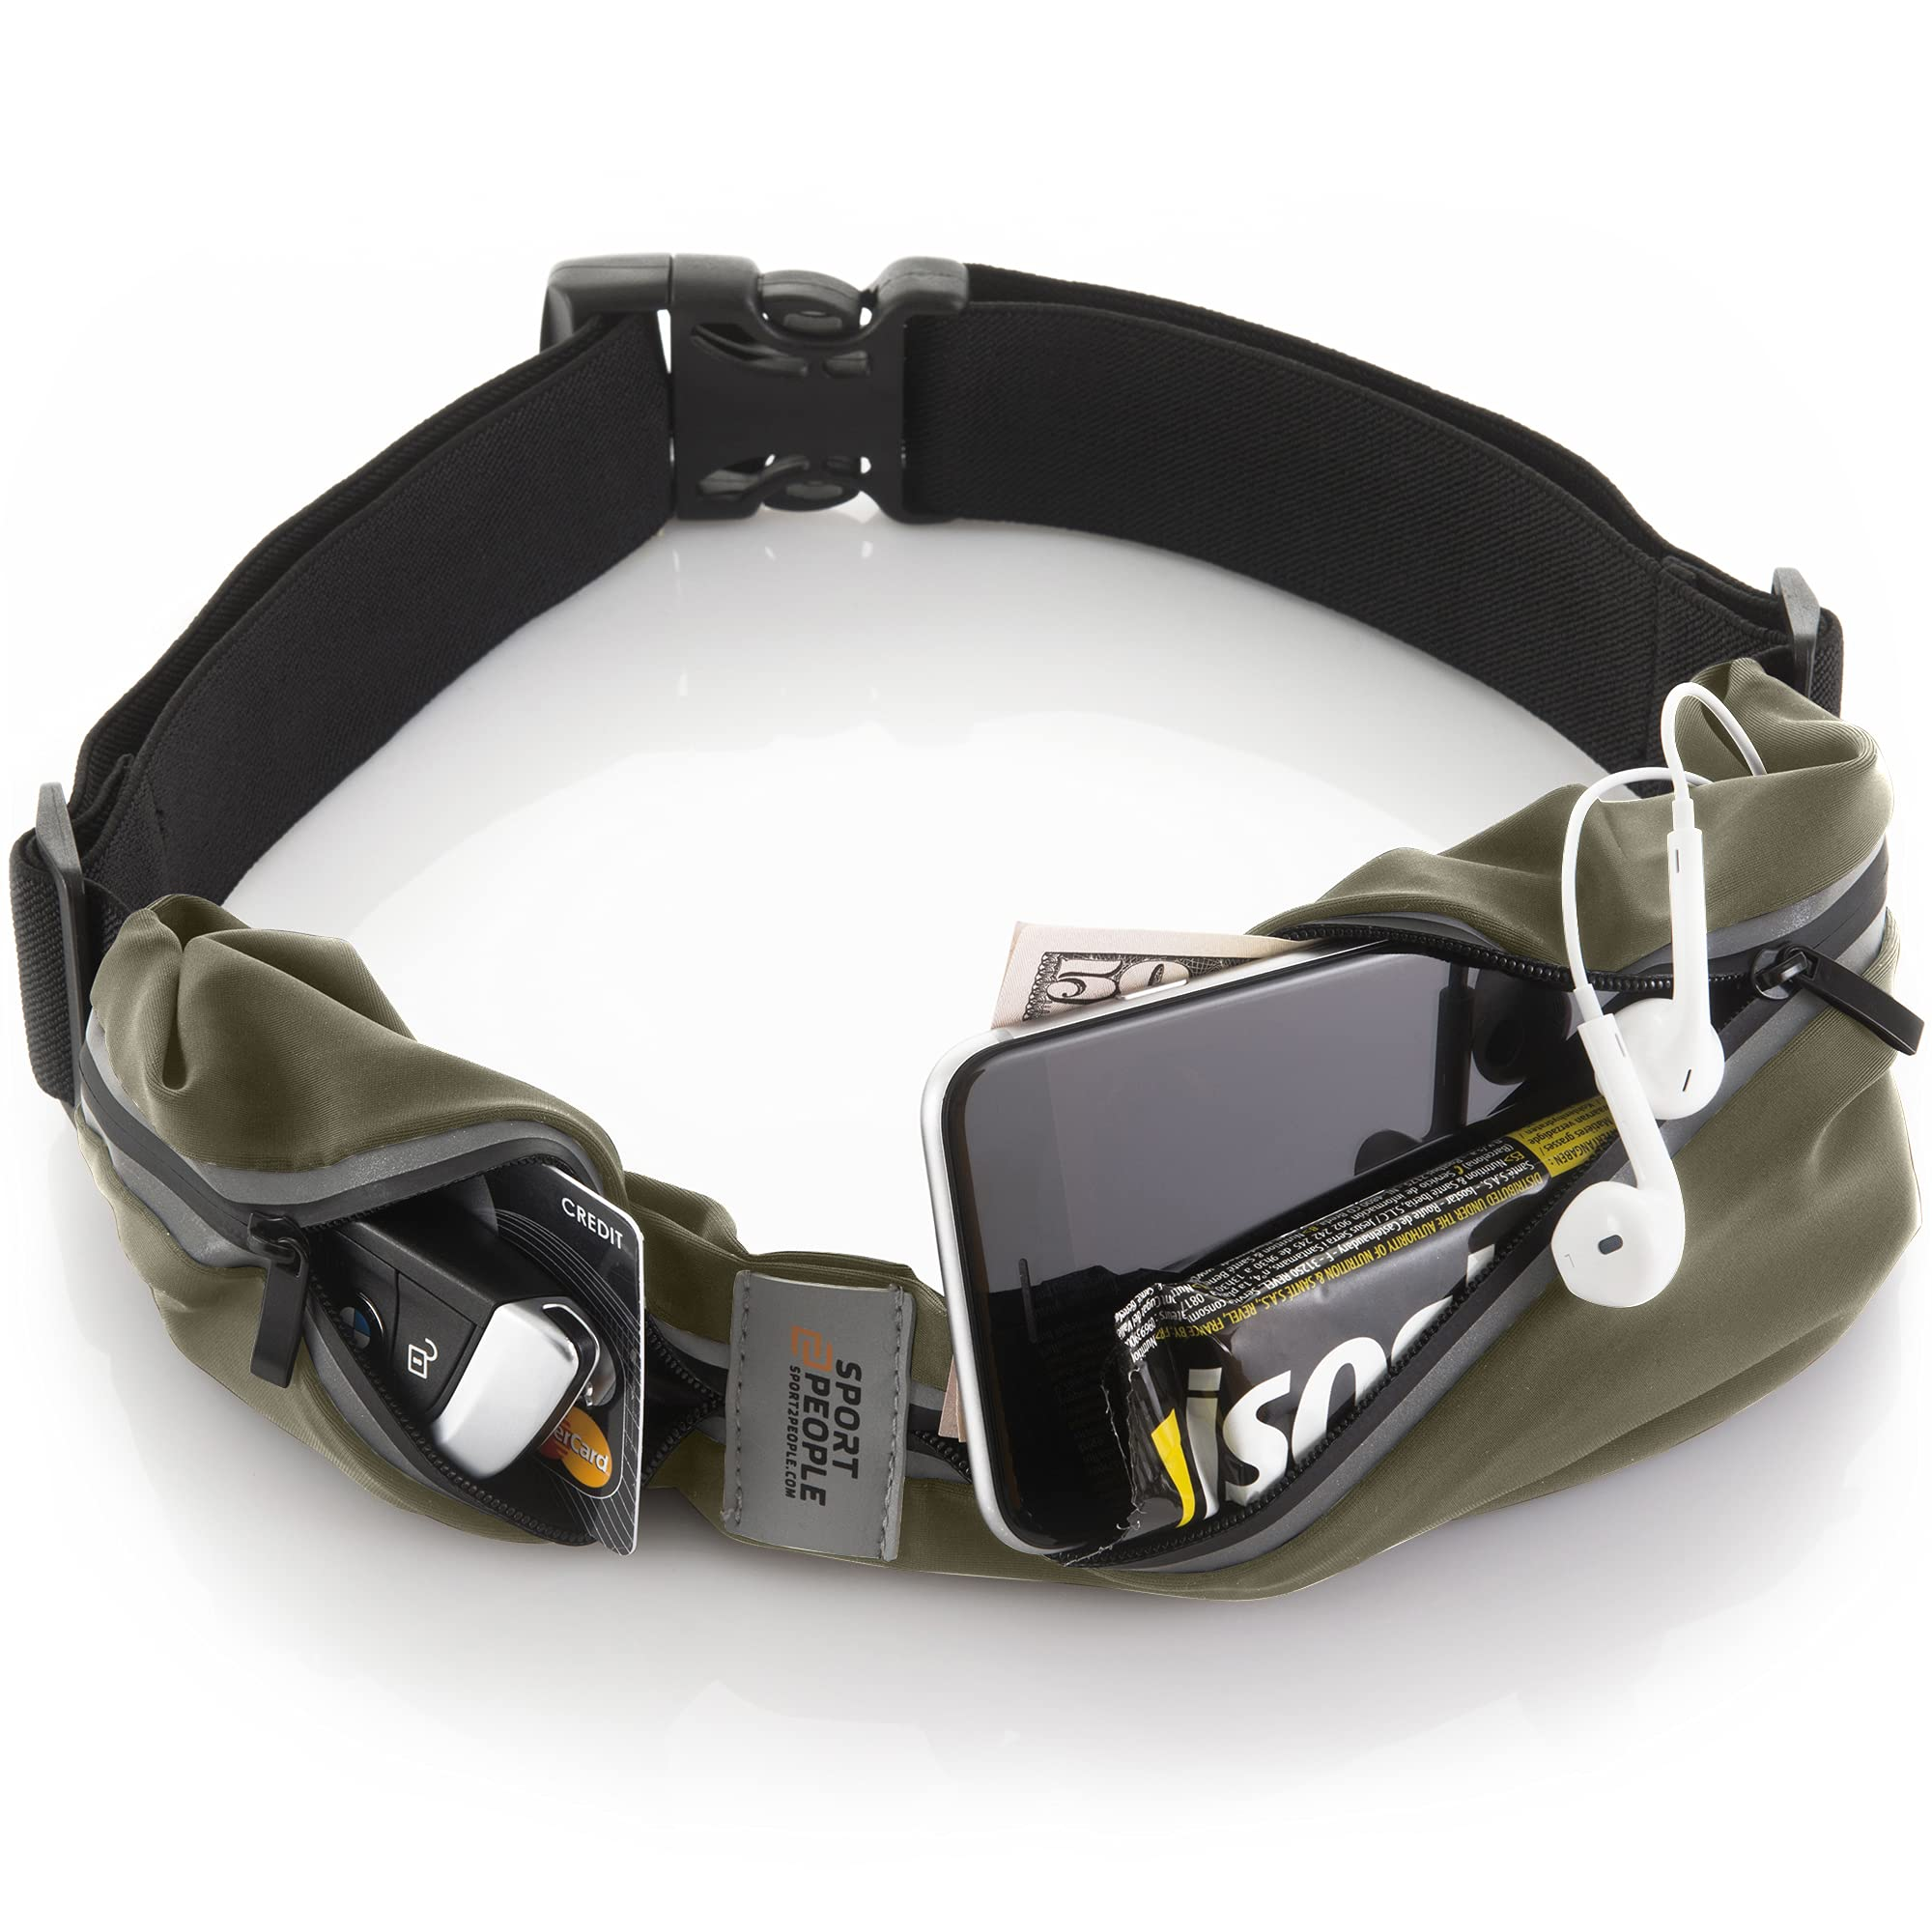 sport2people Running Pouch Belt, USA Patented, Cell Phone Holder Waist Pack iPhone for Men and Women hiking walking traveling accessories